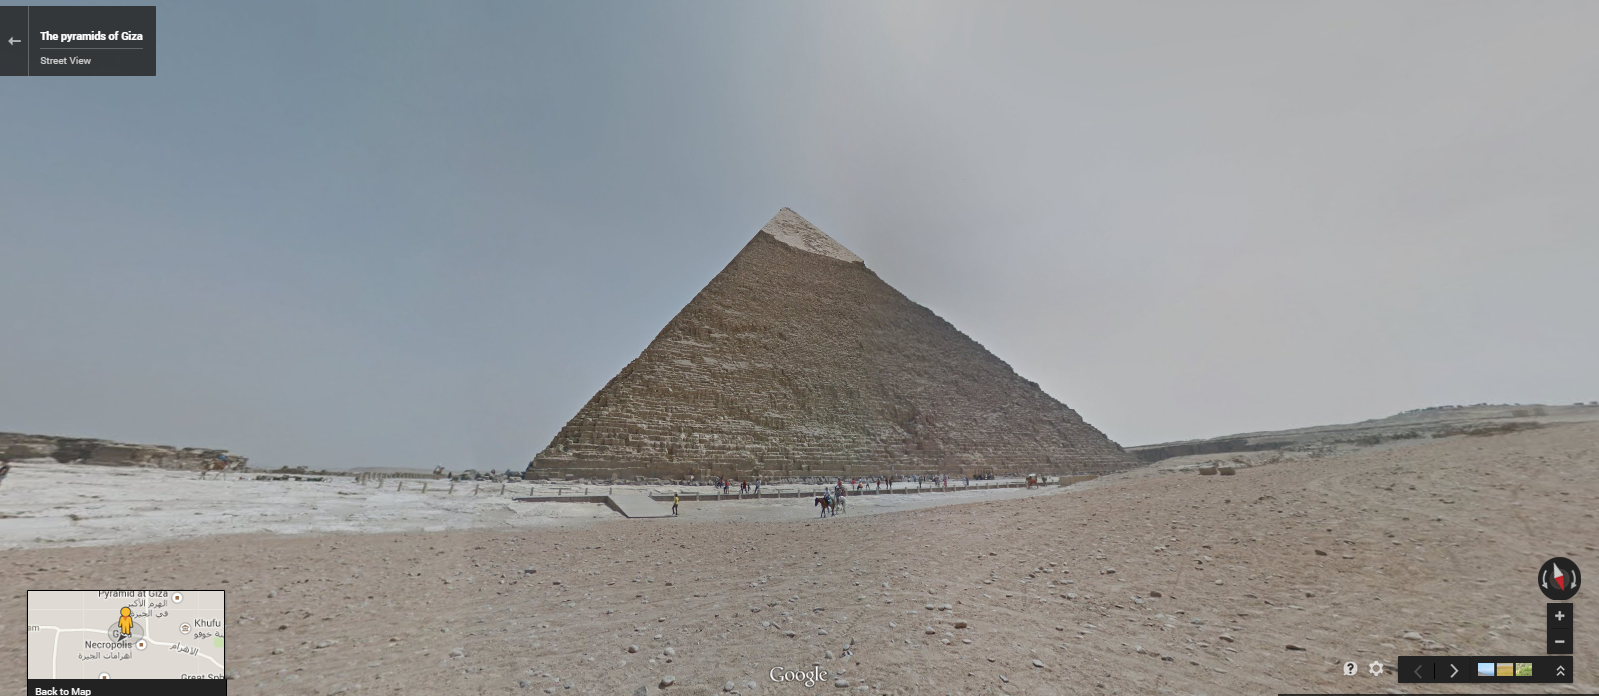 """The Pyramid of Khafre in Giza. <a href=""""https://www.google.com/maps/@29.9756176,31.1385759,3a,75y,266.76h,90.17t/data=!3m5!1e1!3m3!1stcfQT8Ja6i7iAxcCtDKpLA!2e0!3e5"""" target=""""_blank"""">Click here</a> to view in Google Street View."""